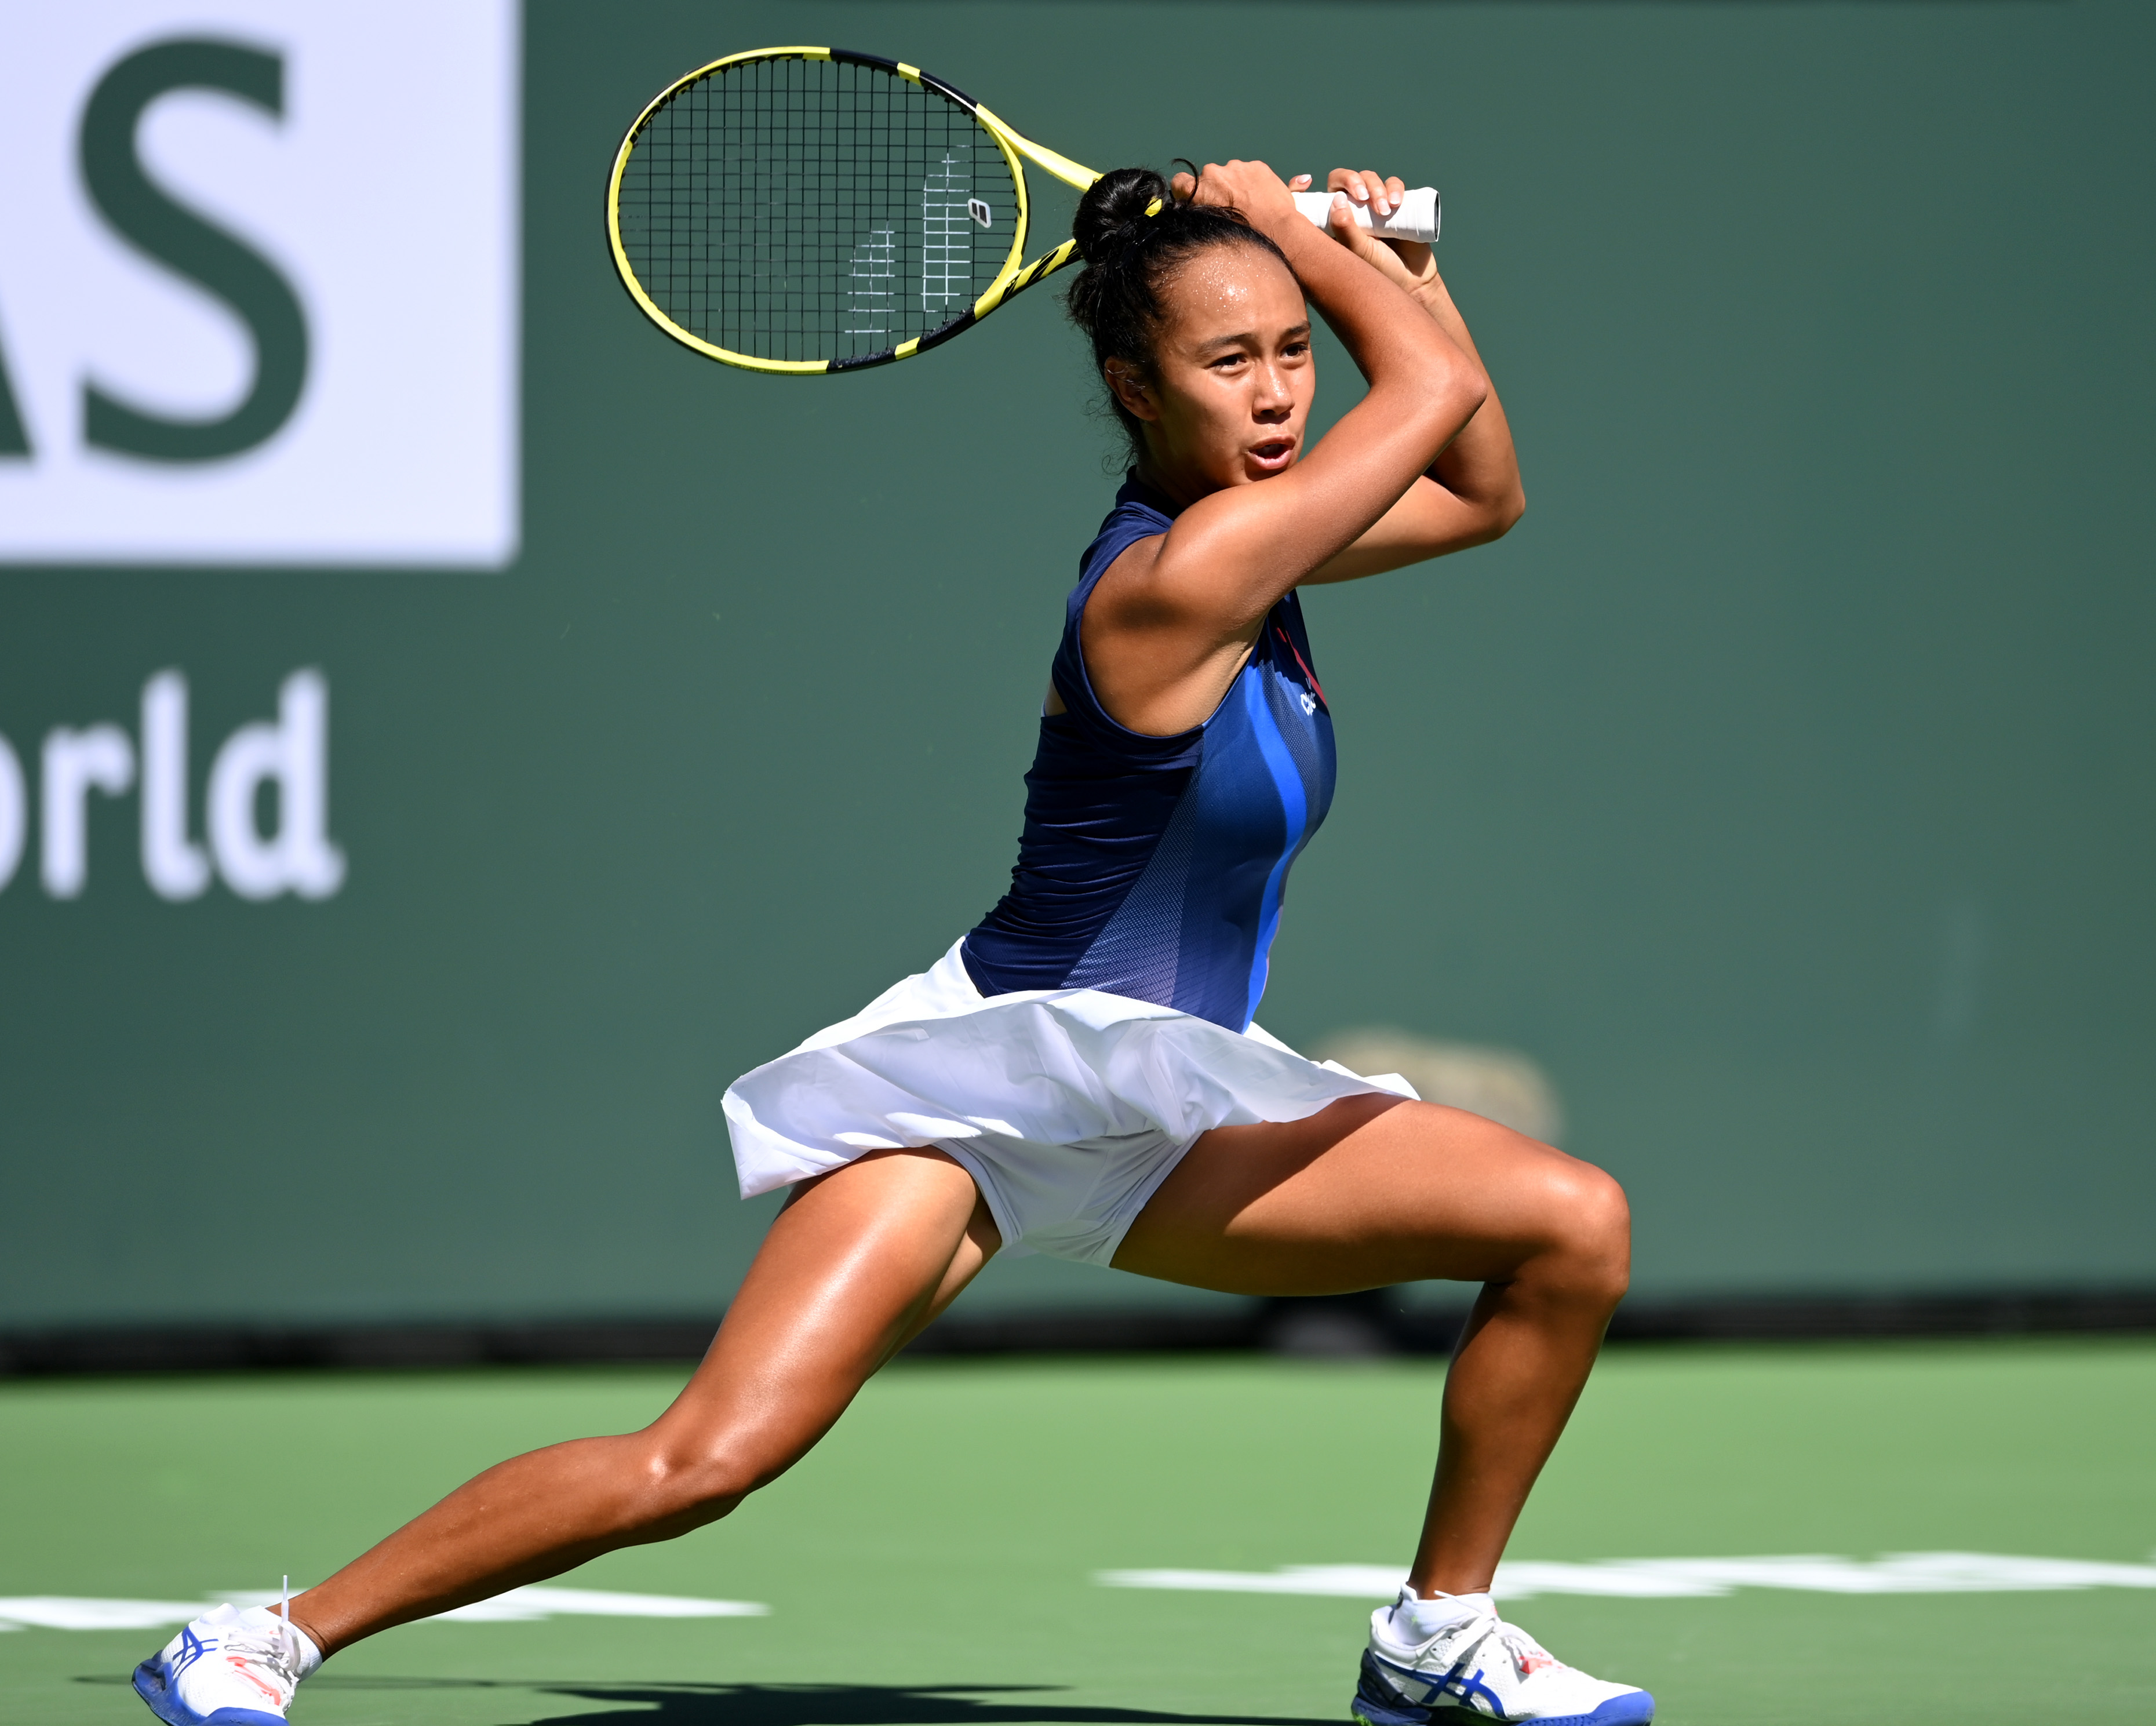 Oct 12, 2021; Indian Wells, CA, USA; Leyla Fernandez (CAN) hits a shot against Shelby Rogers (USA) during a fourth round match in the BNP Paribas Open at the Indian Wells Tennis Garden. Mandatory Credit: Jayne Kamin-Oncea-USA TODAY Sports